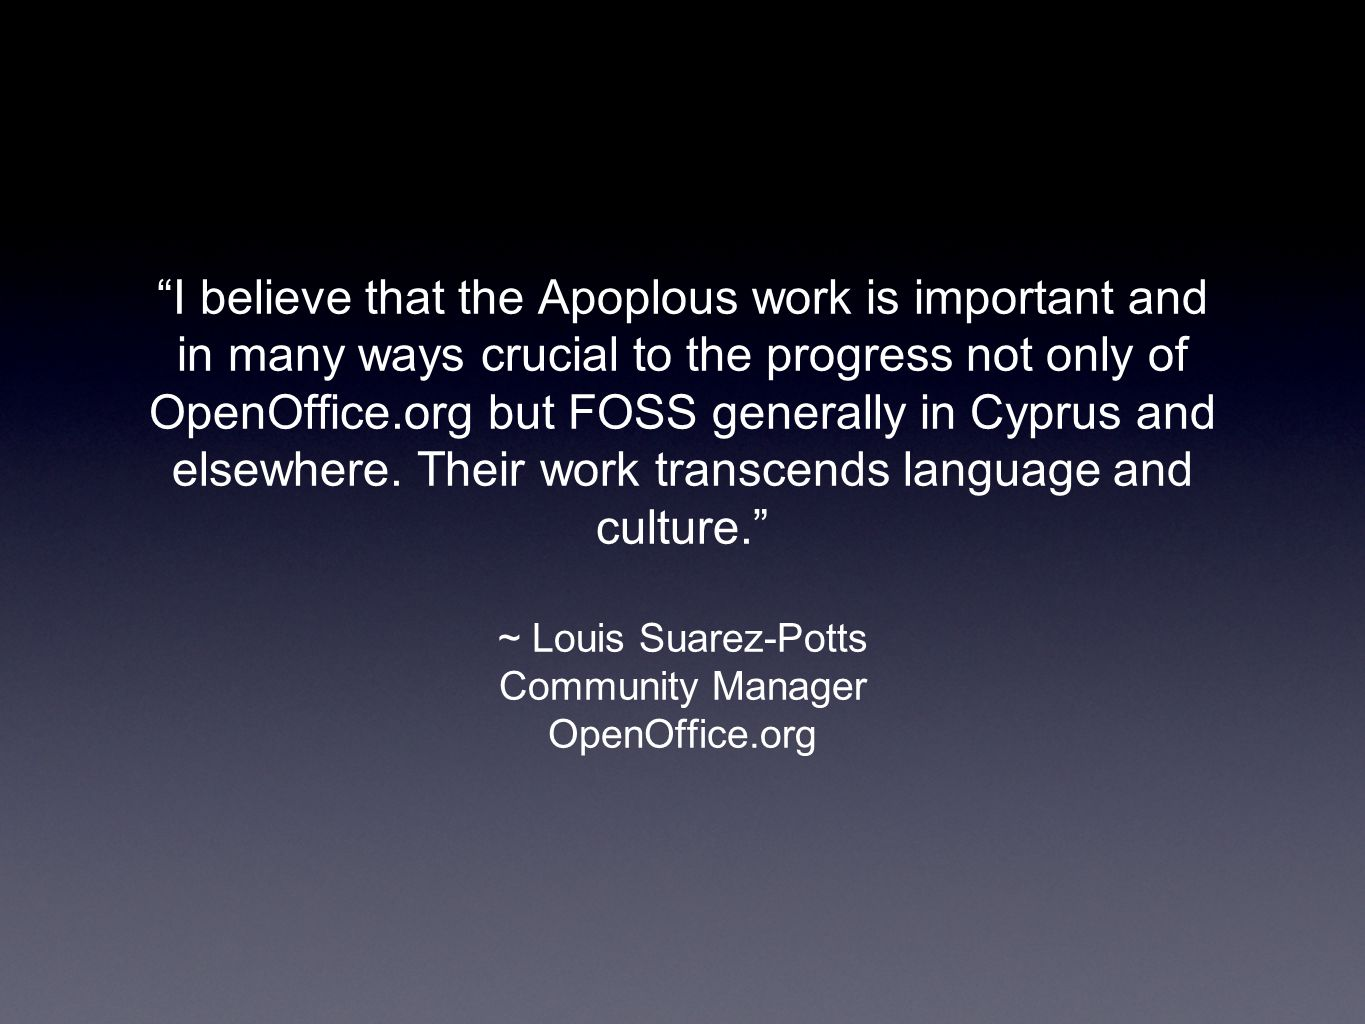 I believe that the Apoplous work is important and in many ways crucial to the progress not only of OpenOffice.org but FOSS generally in Cyprus and elsewhere.